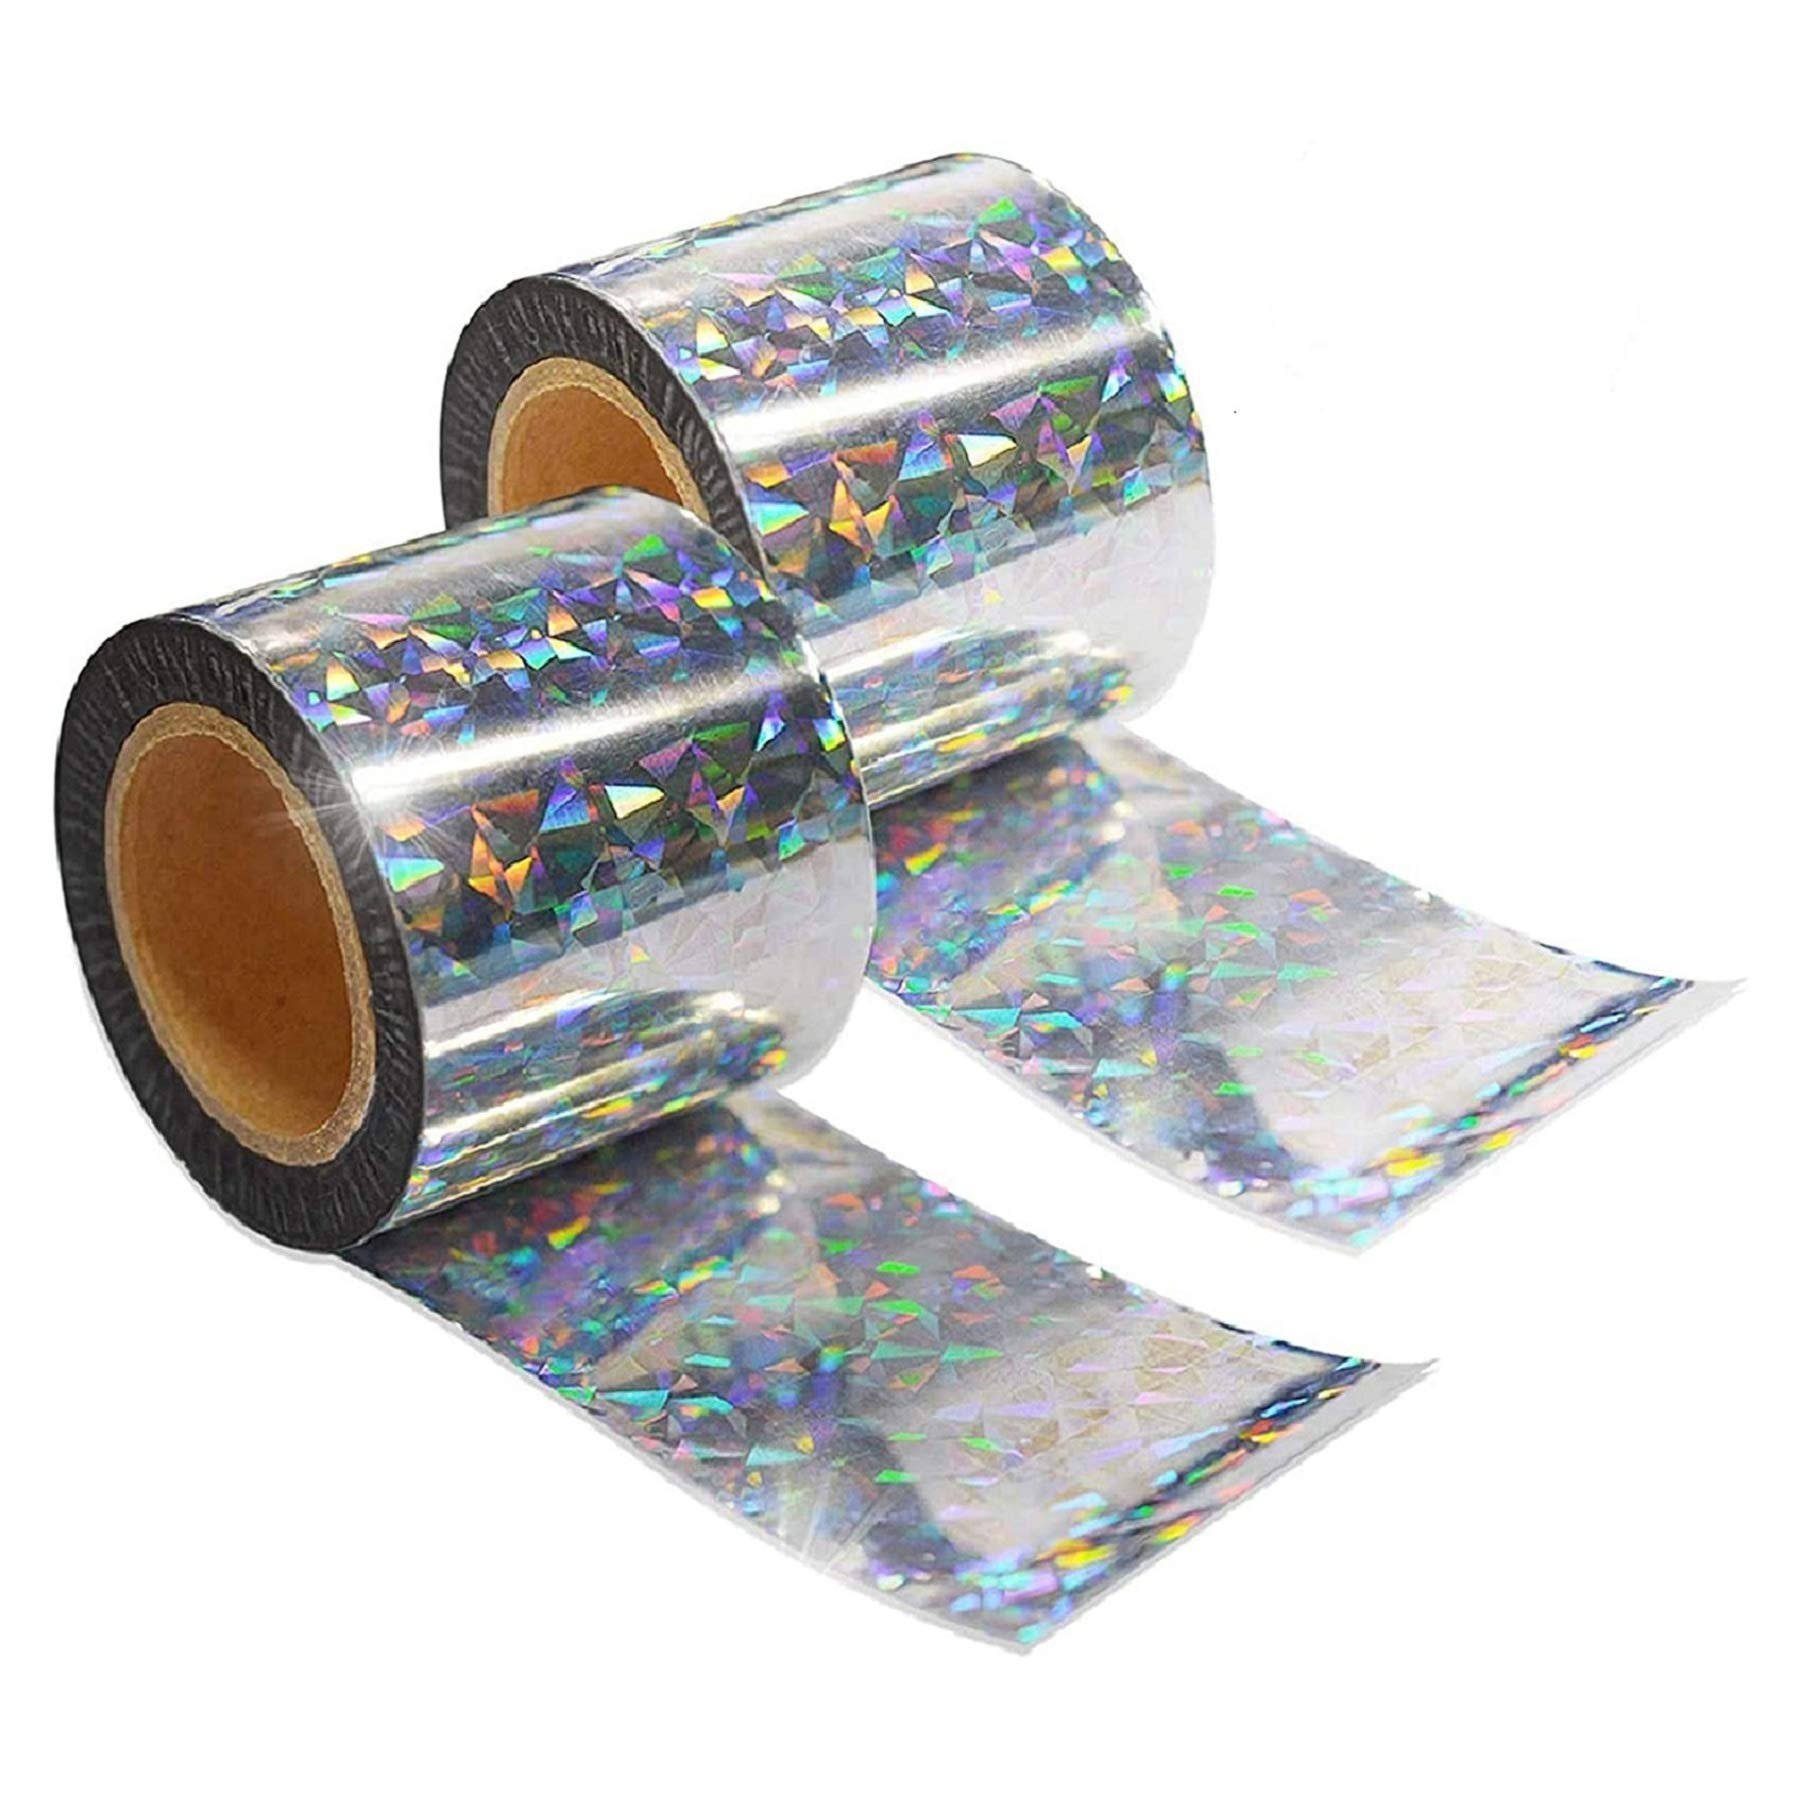 ASPECTEK Bird Repellent Reflective Scare Tape,Wide-width 5cm x 60m Pest Control Dual-Sided Deterrent Tape for Pigeons, Grackles, Woodpeckers, Geese, Herons, Blackbirds & More